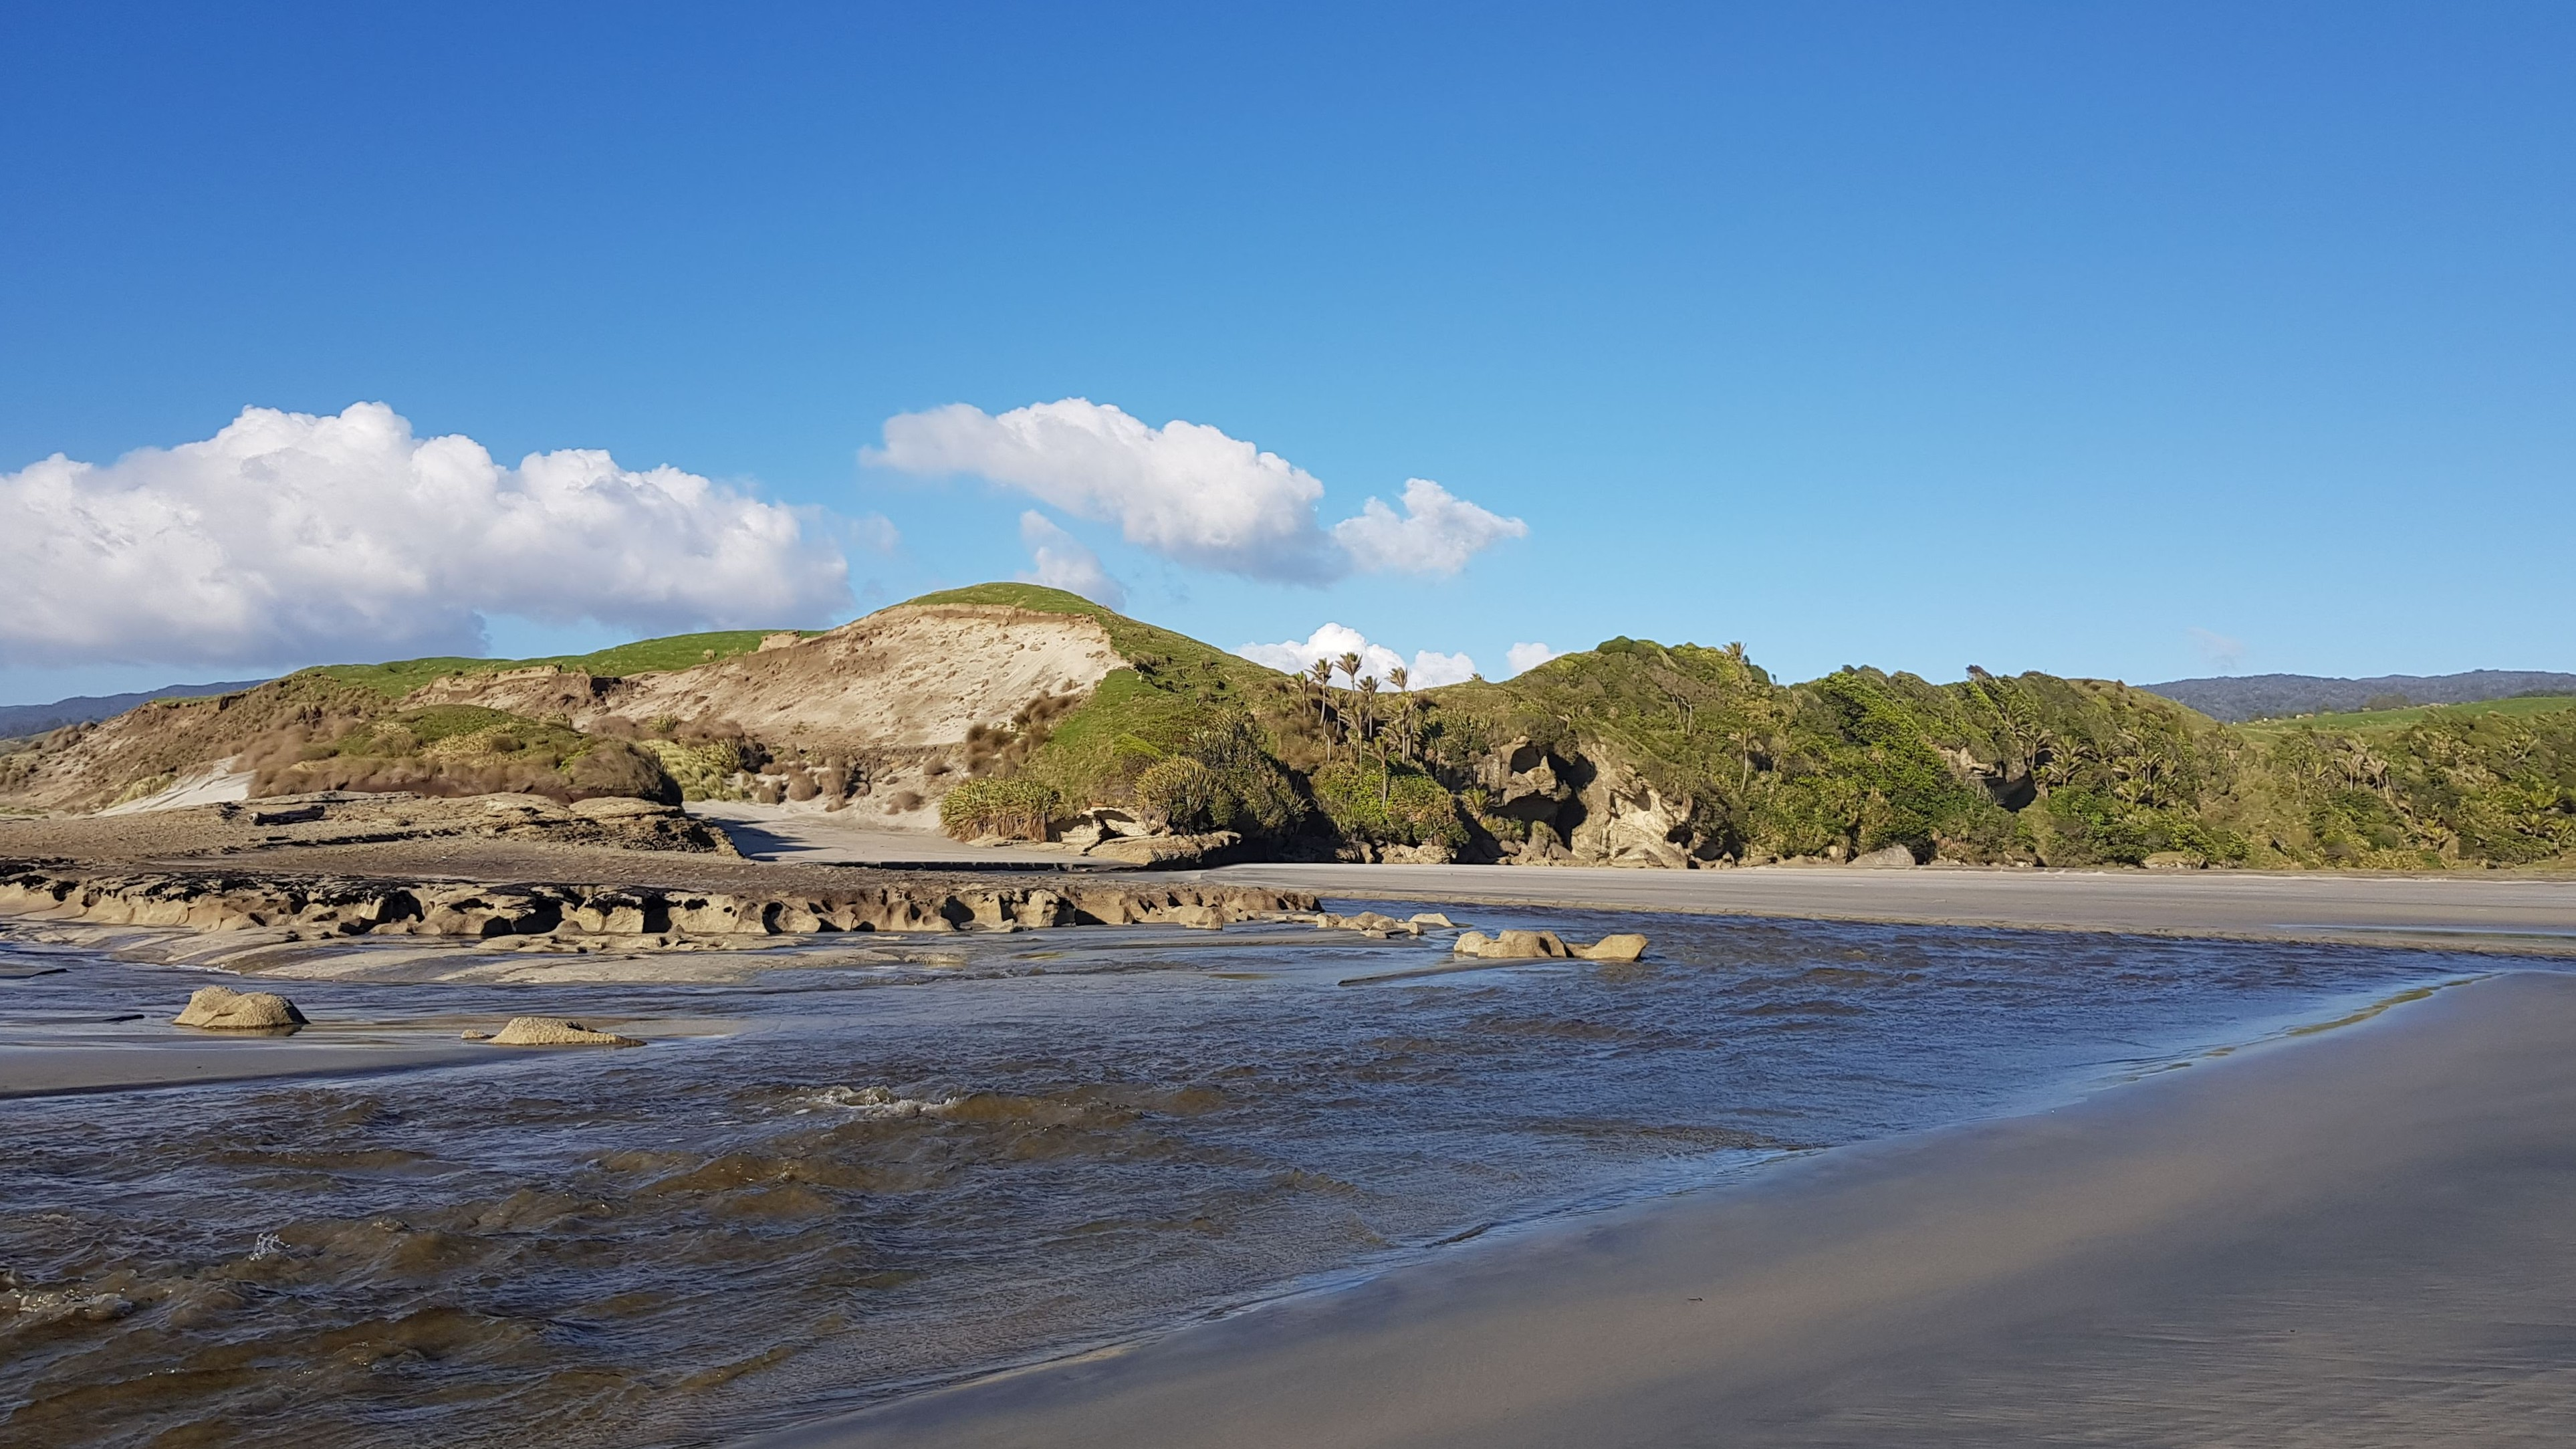 The Anaweka River mouth at low tide